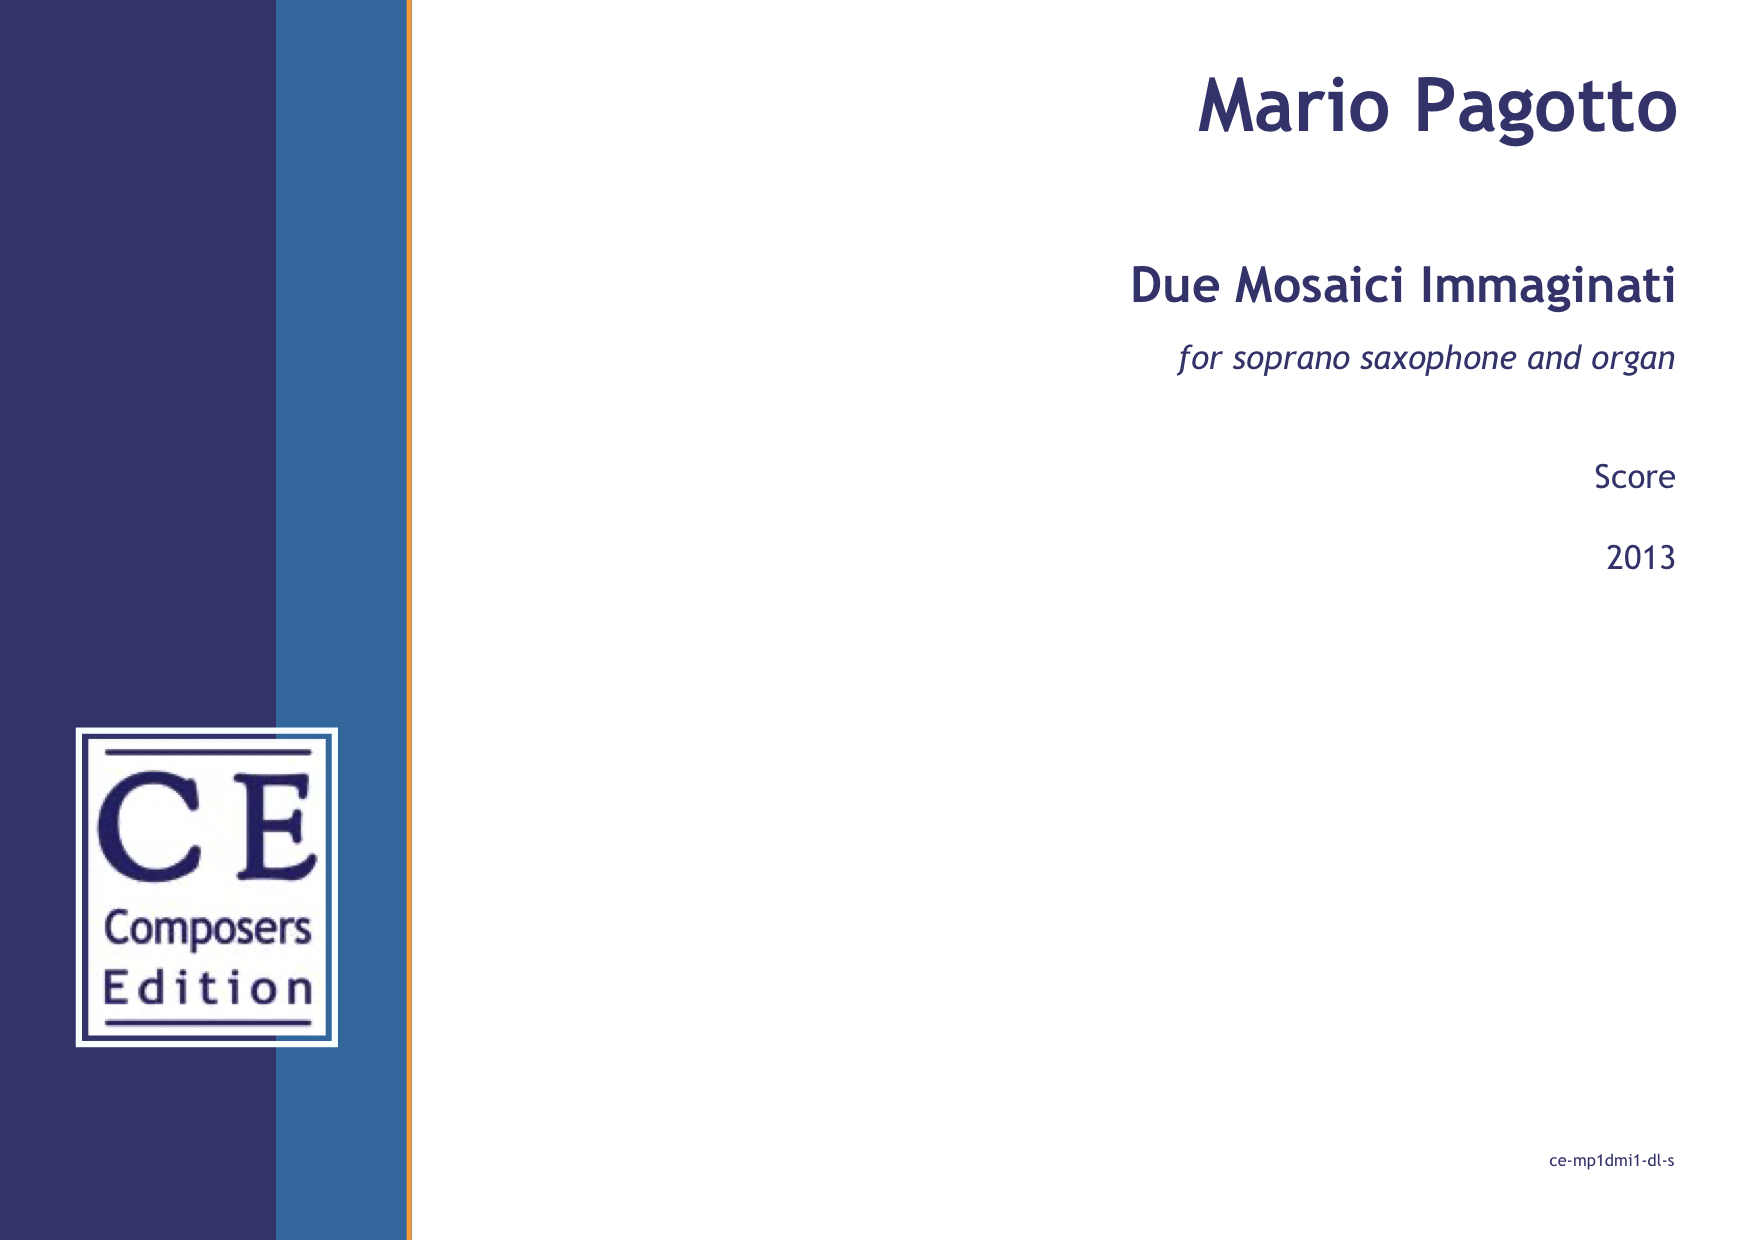 Mario Pagotto: Due Mosaici Immaginati for soprano saxophone and organ